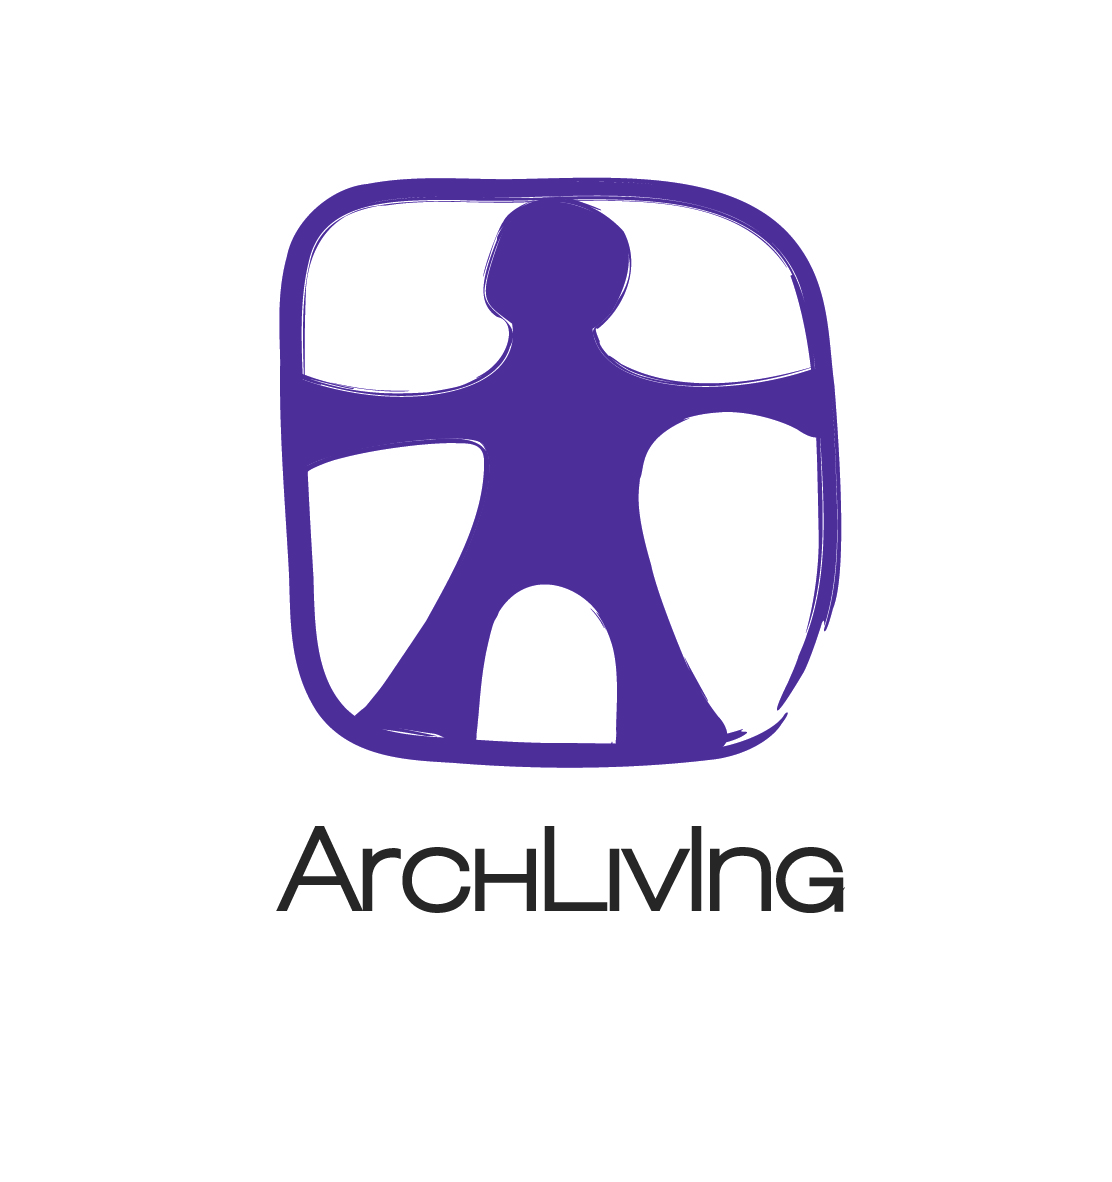 Archiliving verticale_1_2020